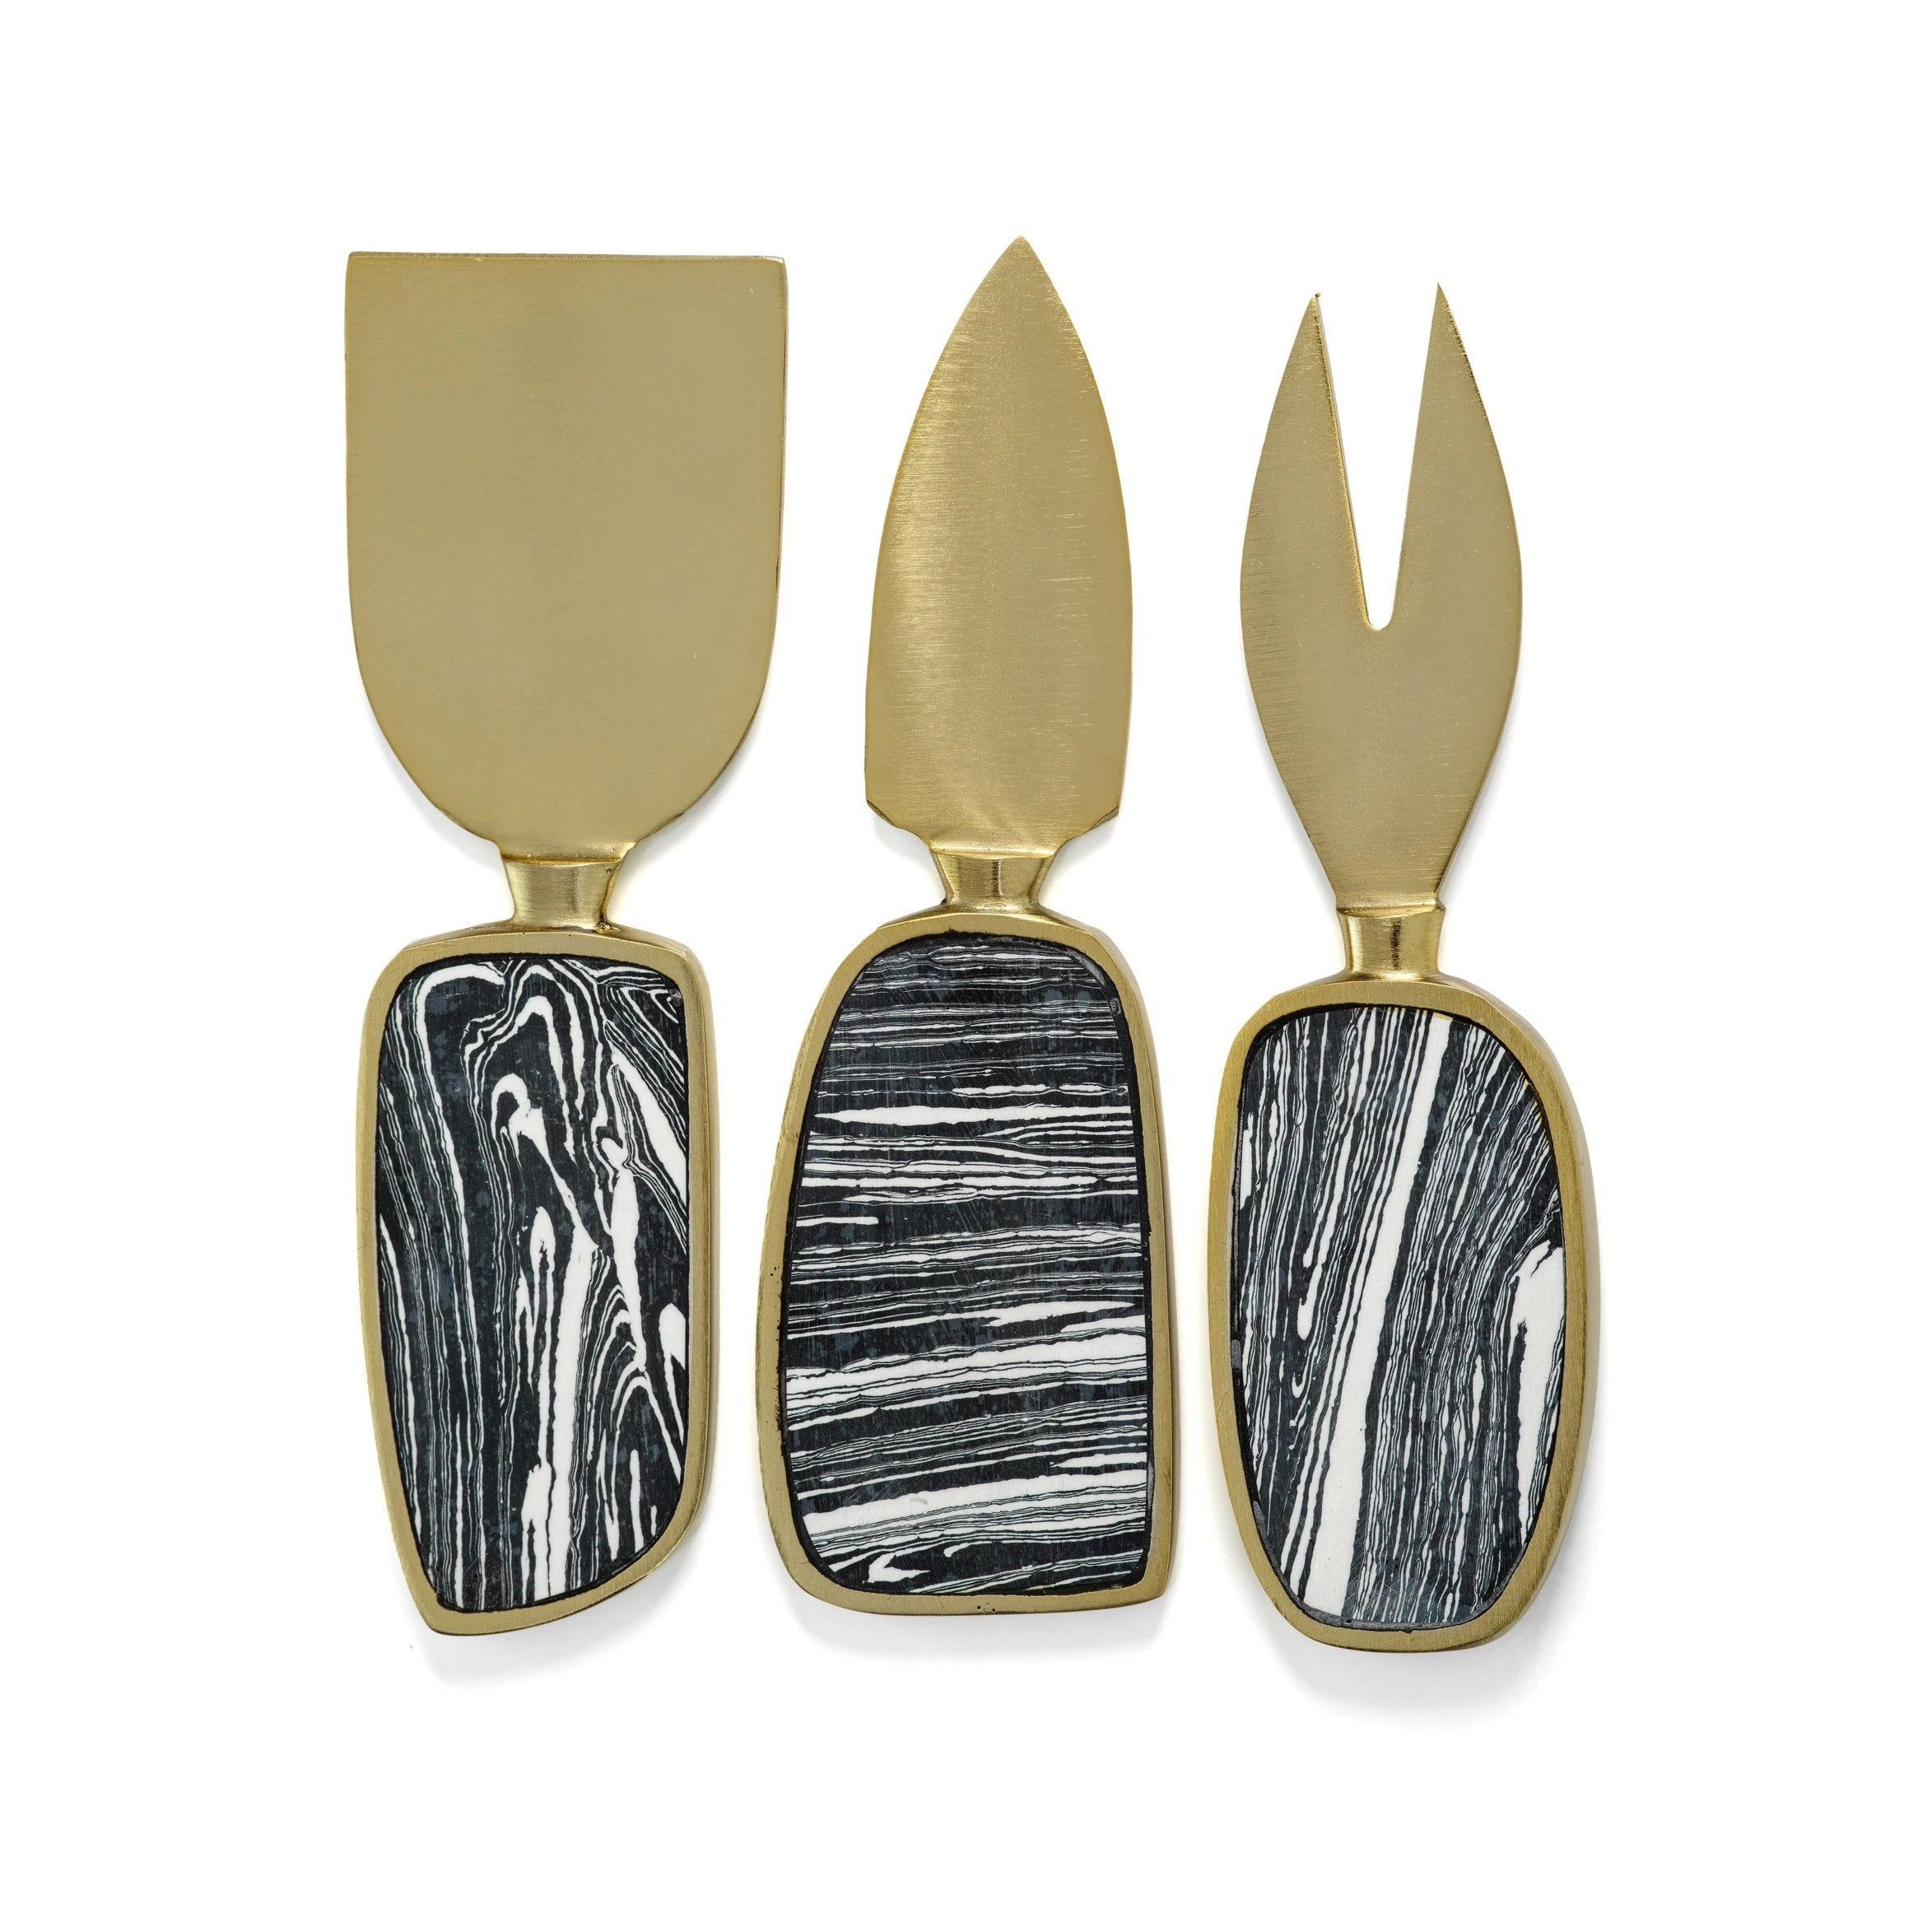 Amalfi Set/3 Cheese Tool Set - Black w/Gold - CARLYLE AVENUE